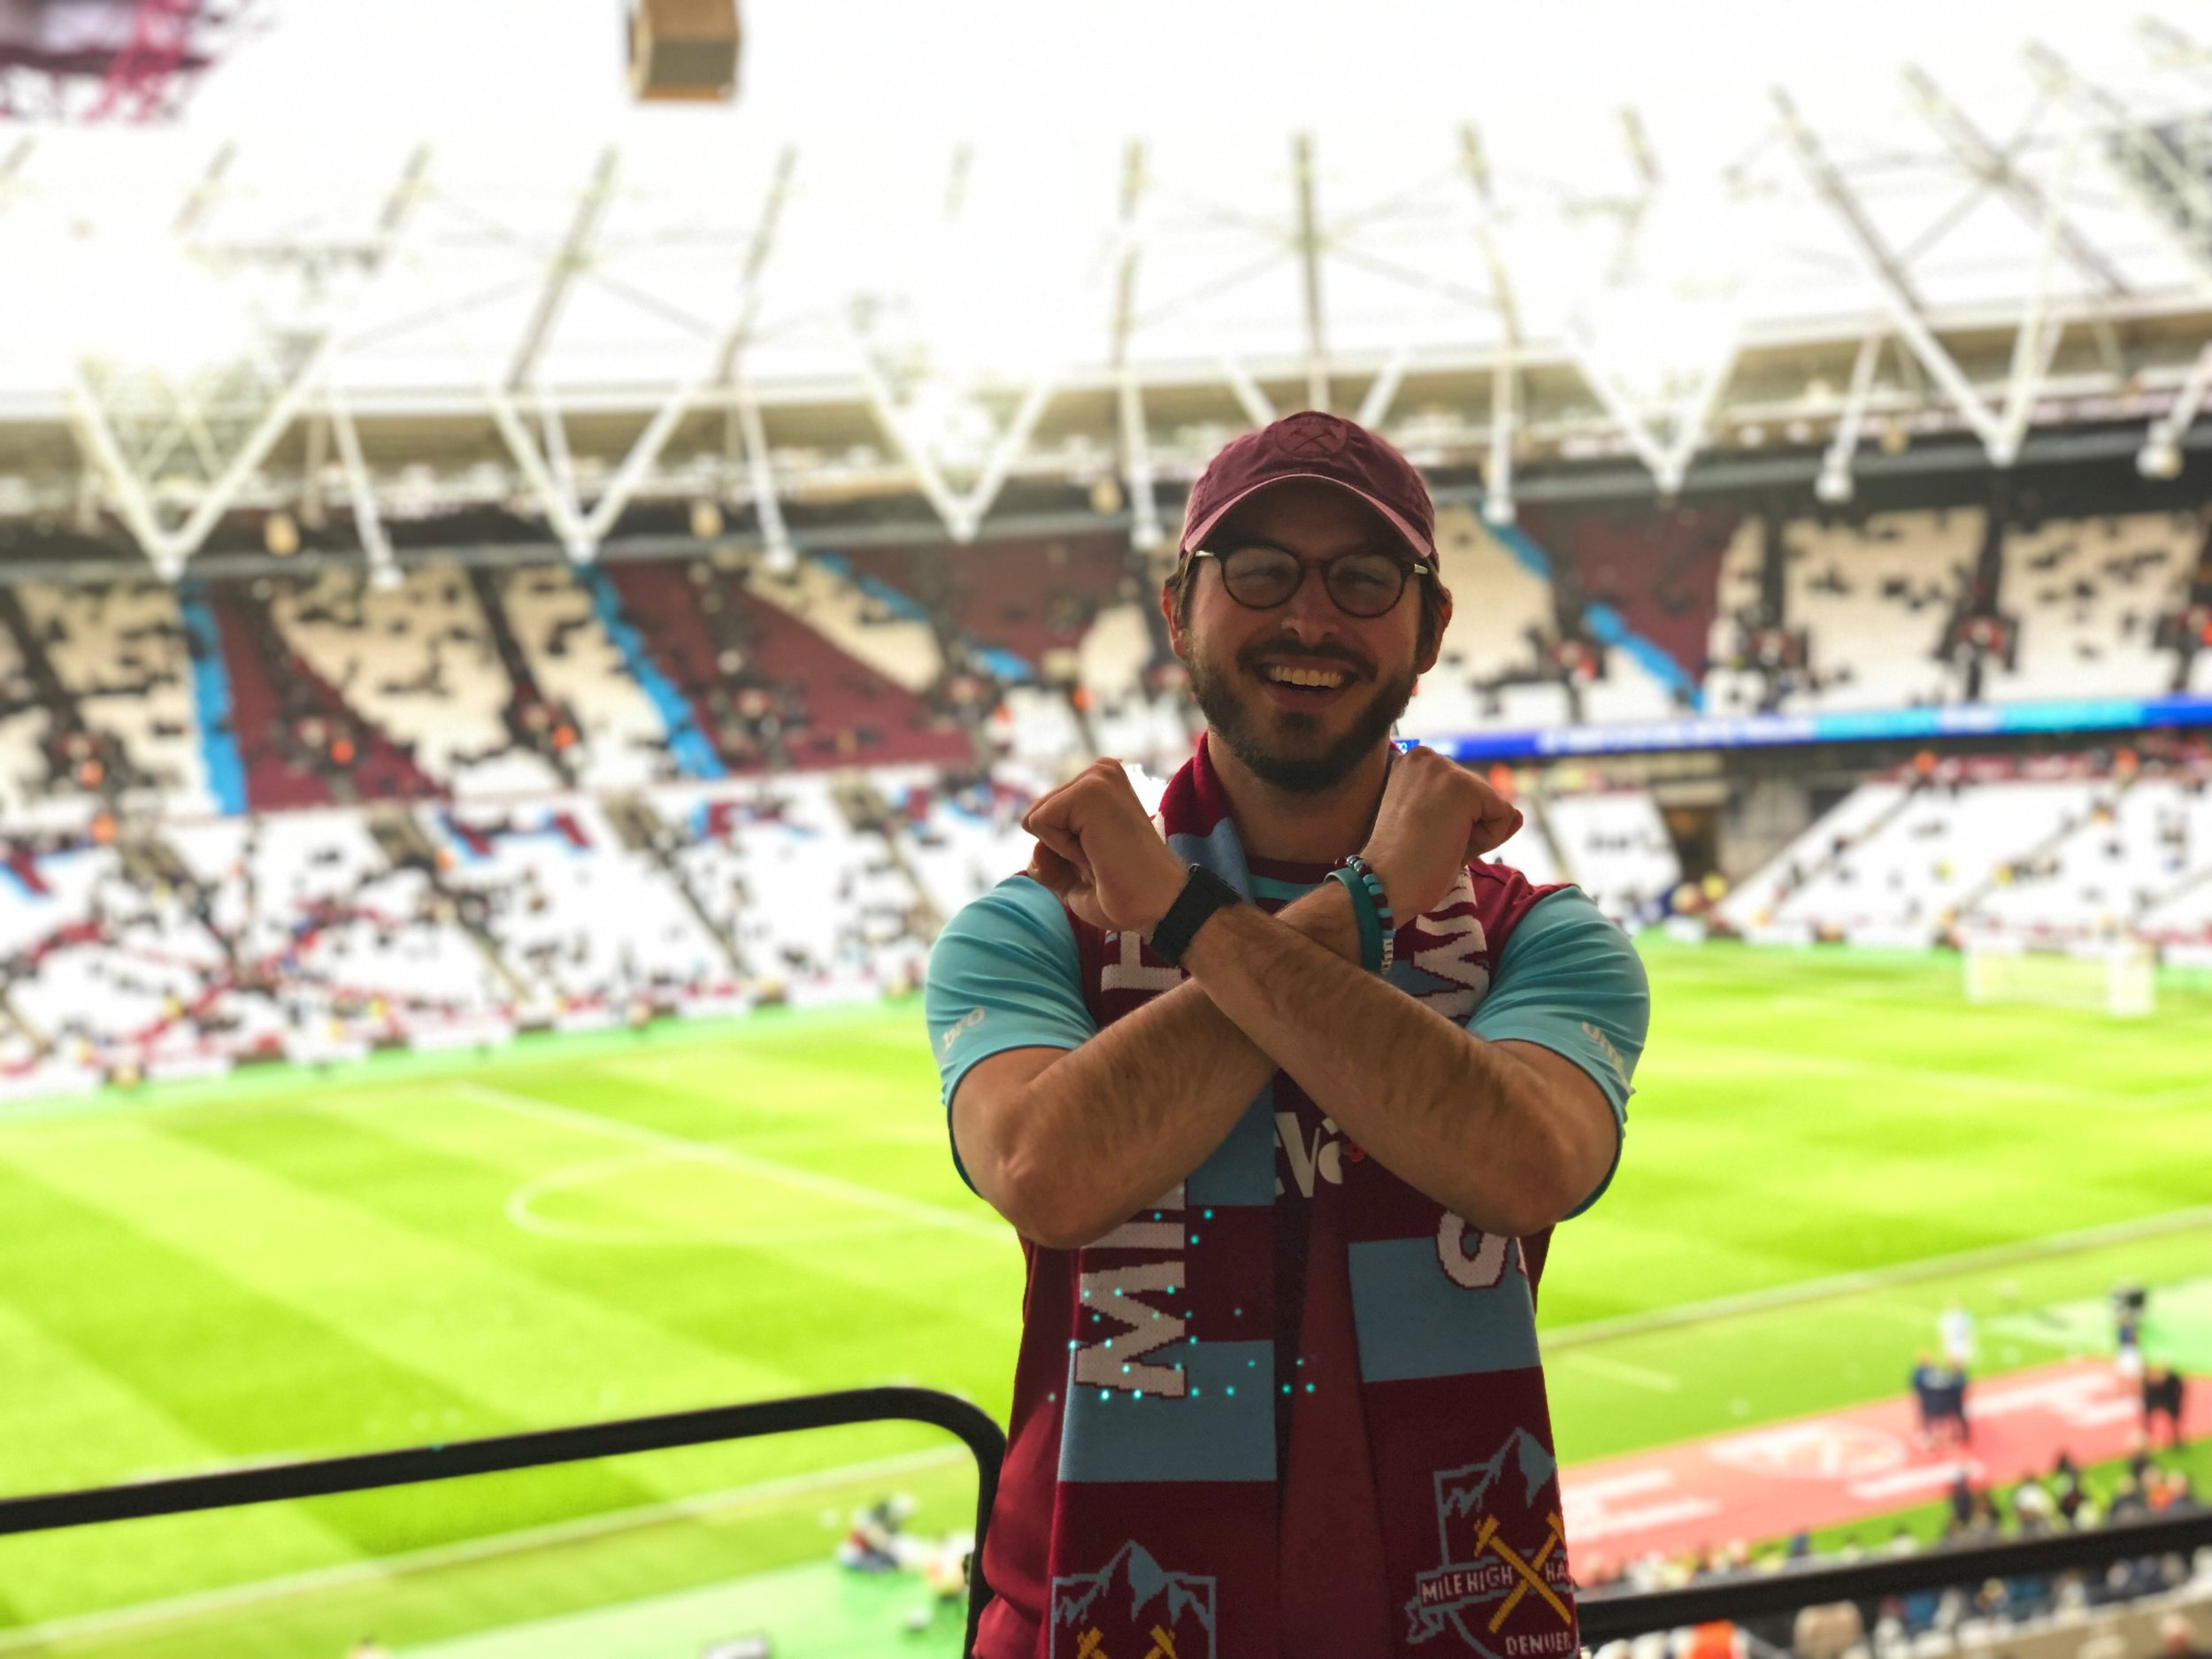 Nick at his first trip to the London Stadium in 2019.